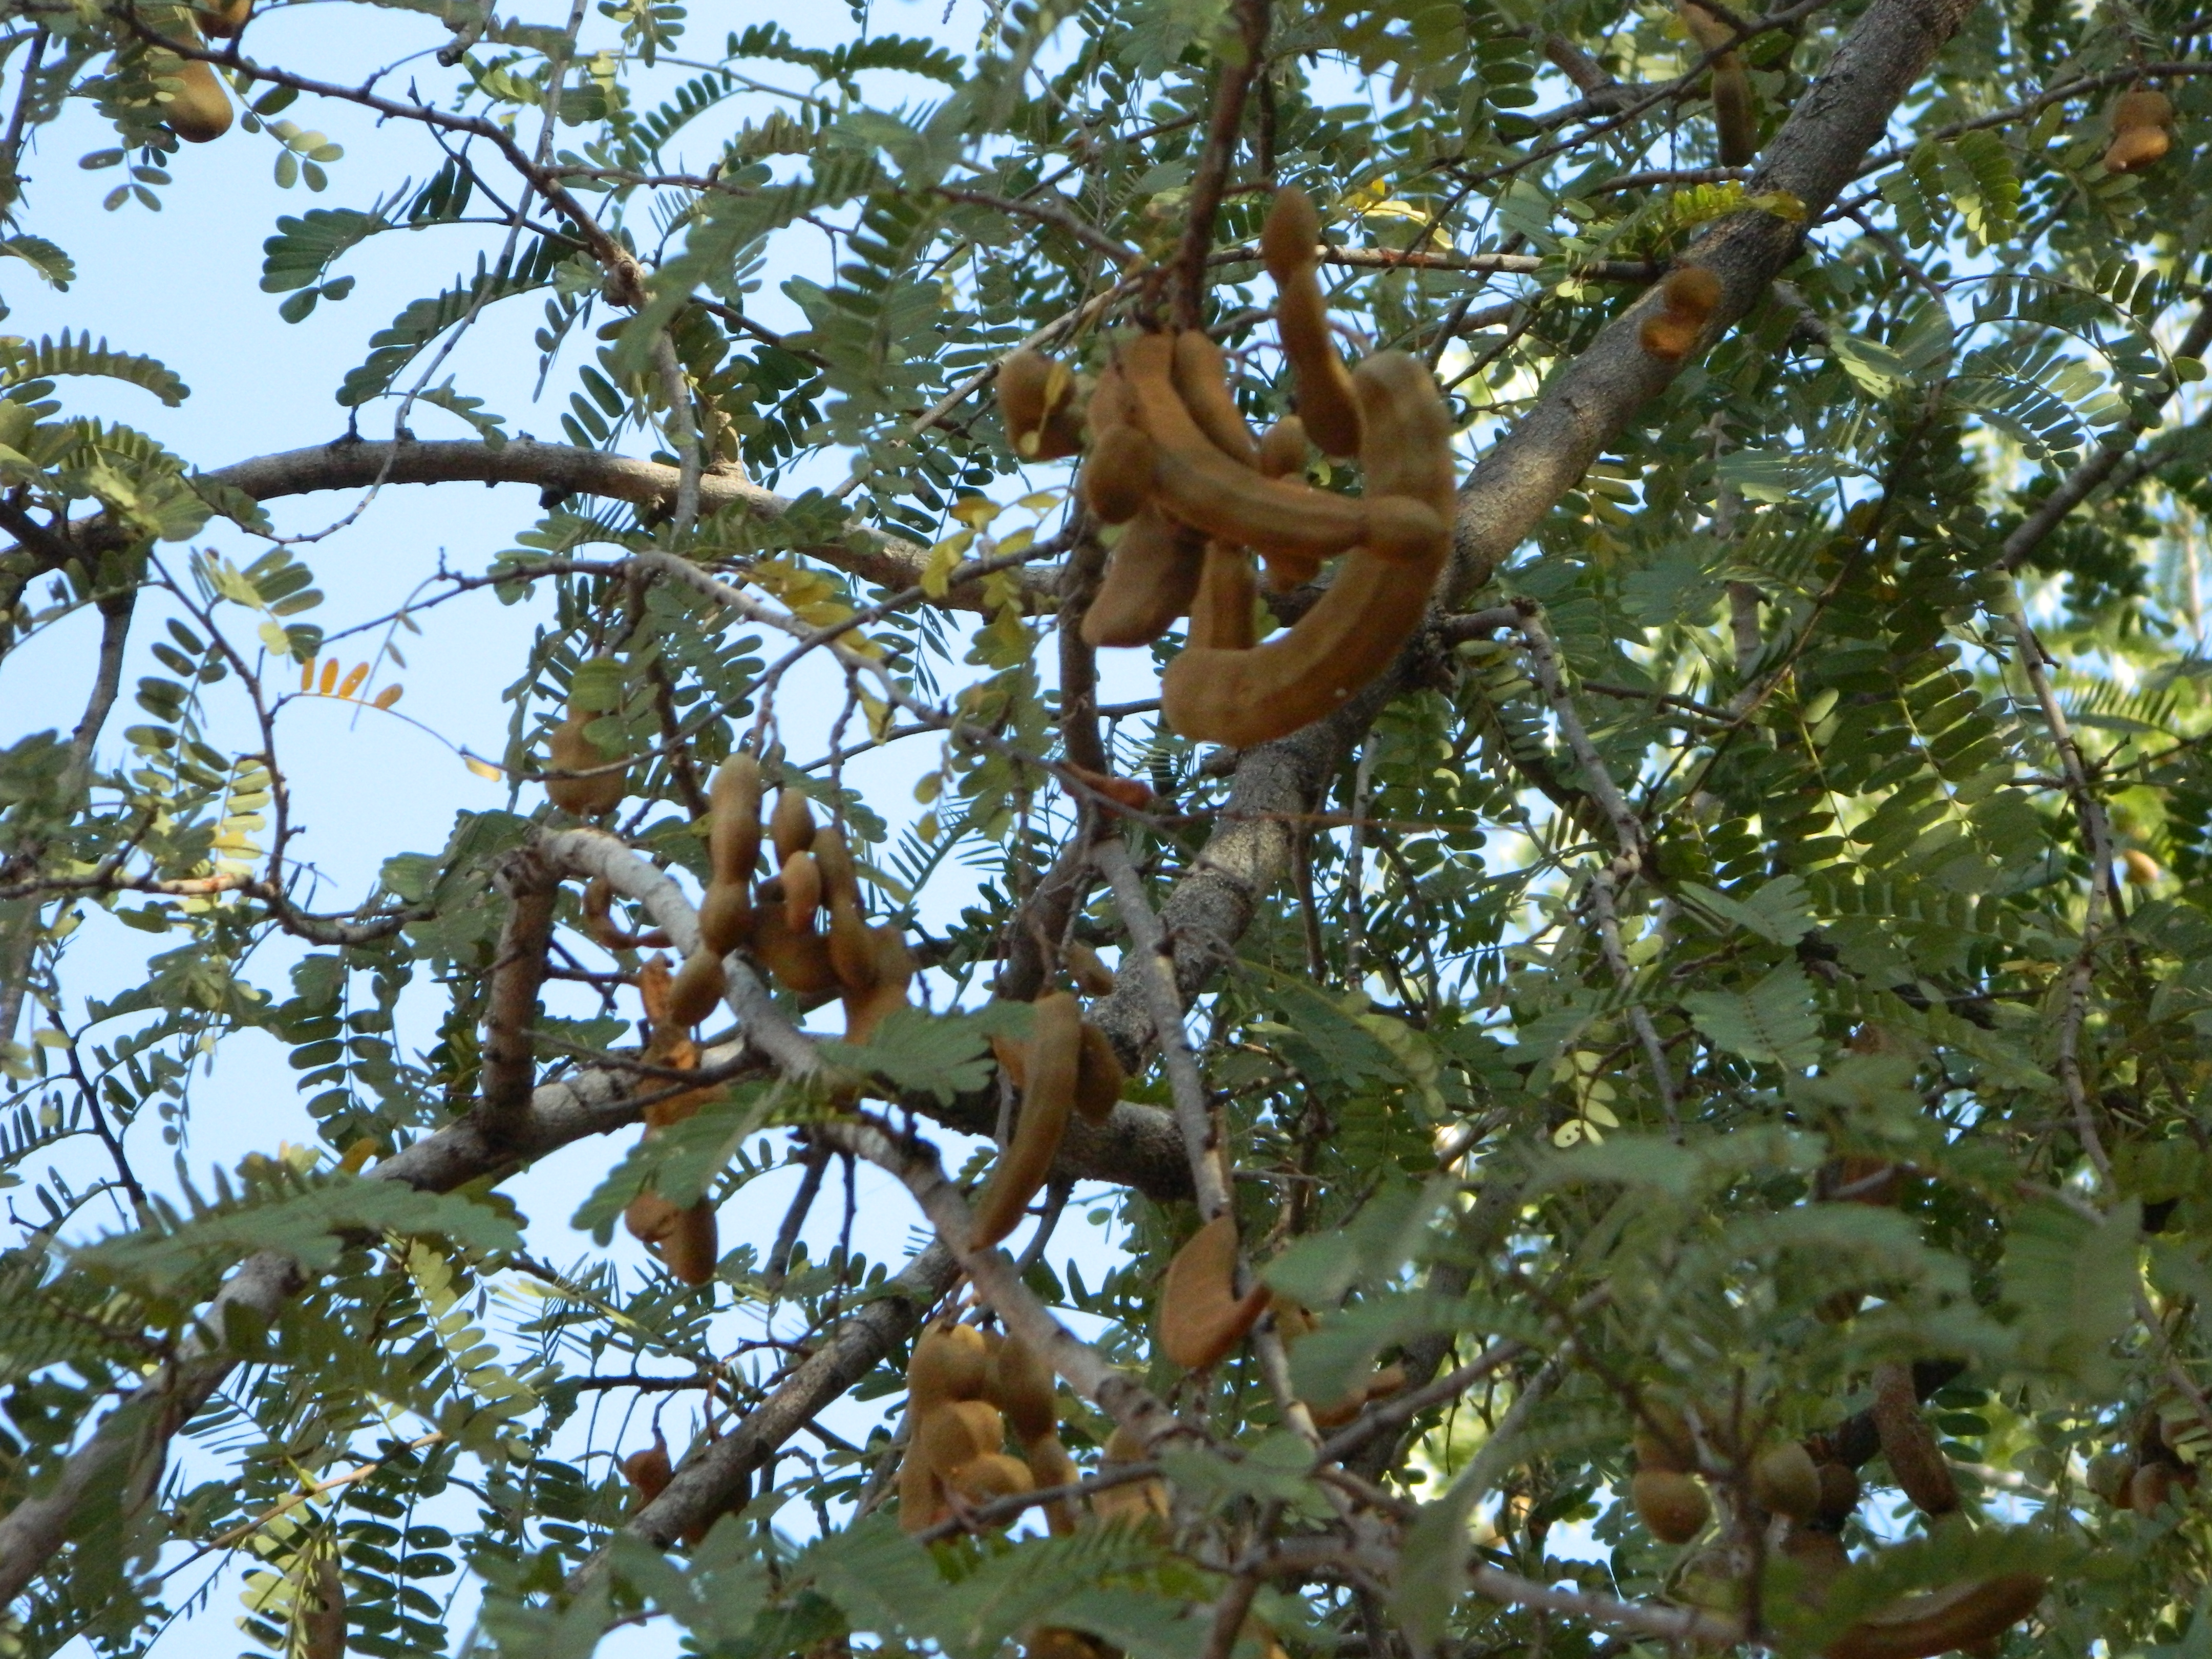 File:A aesthetic Tamarind tree.JPG - Wikimedia Commons